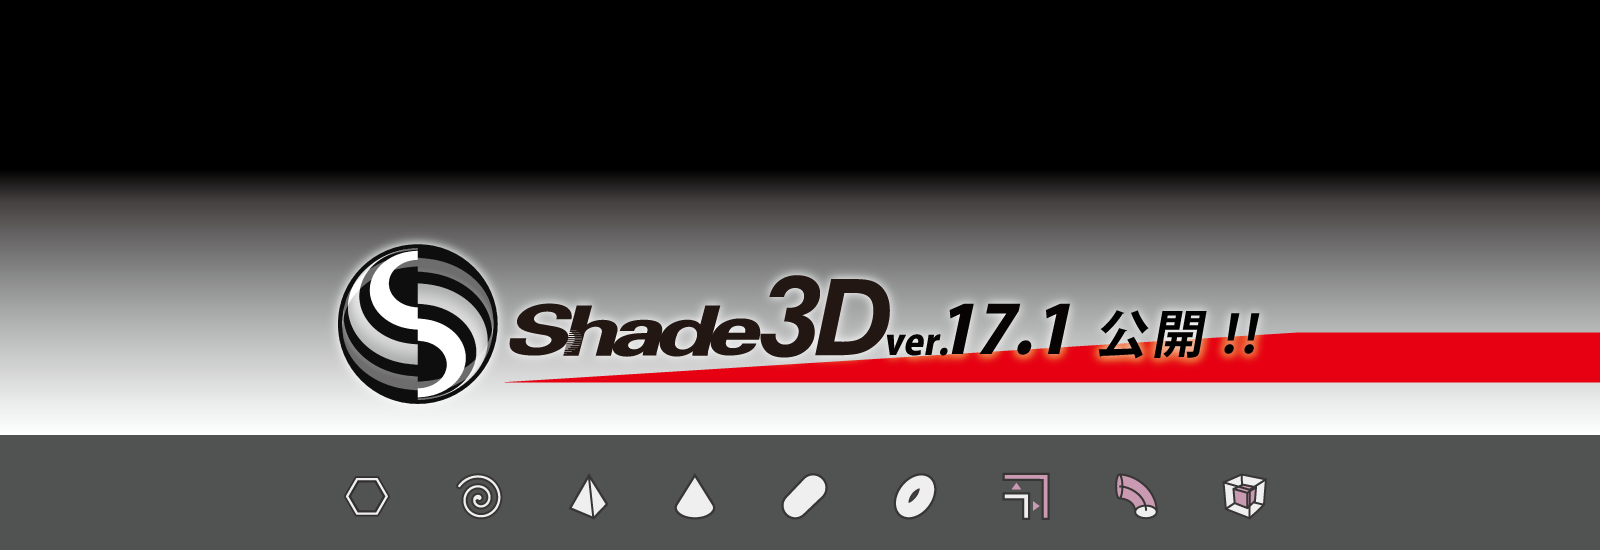 Shade3D ver.17.1 アップデータ TOP